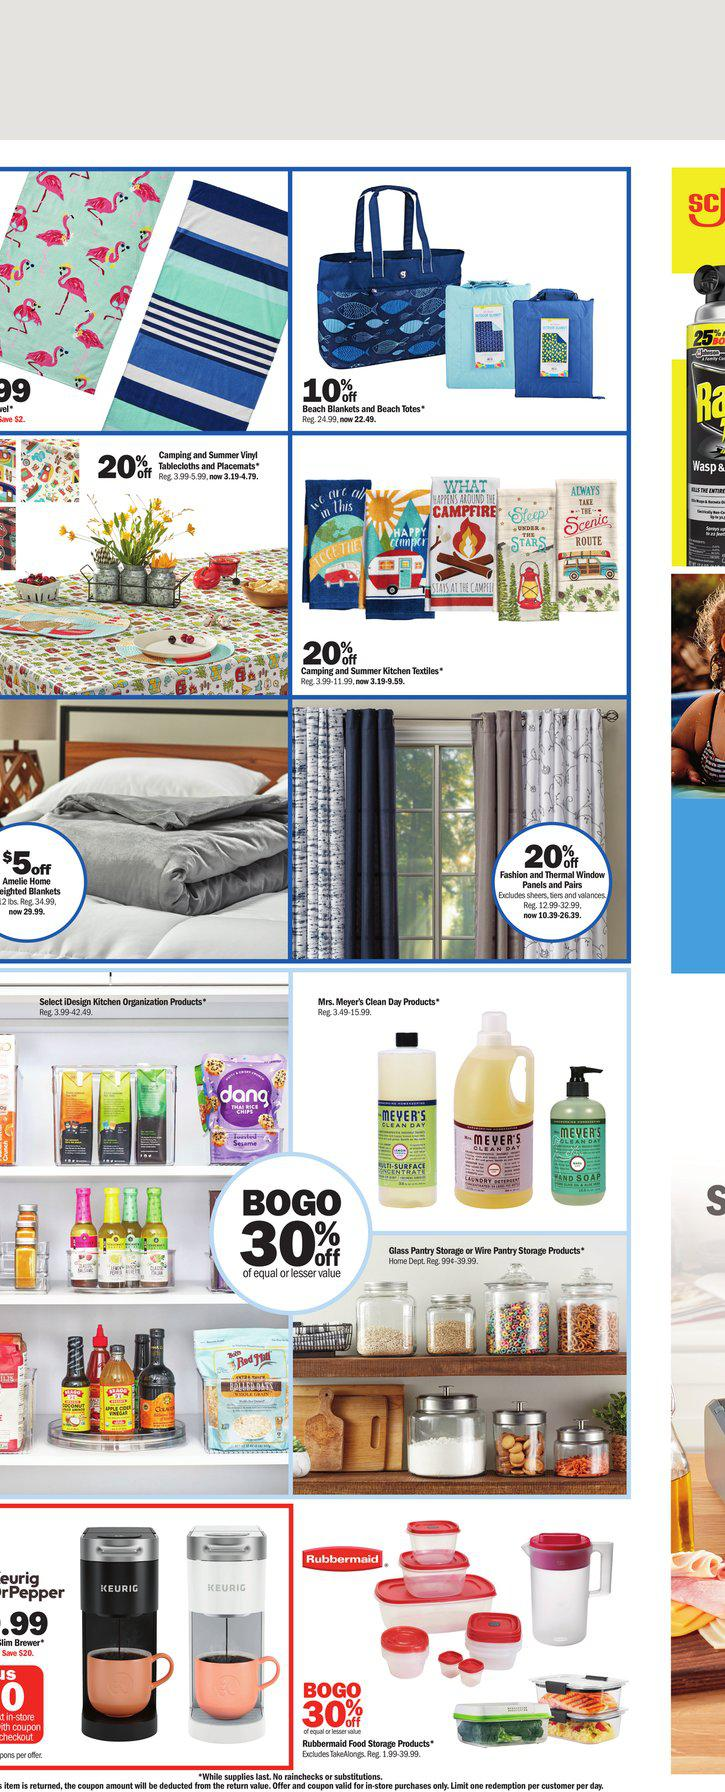 06.06.2021 Meijer ad 22. page